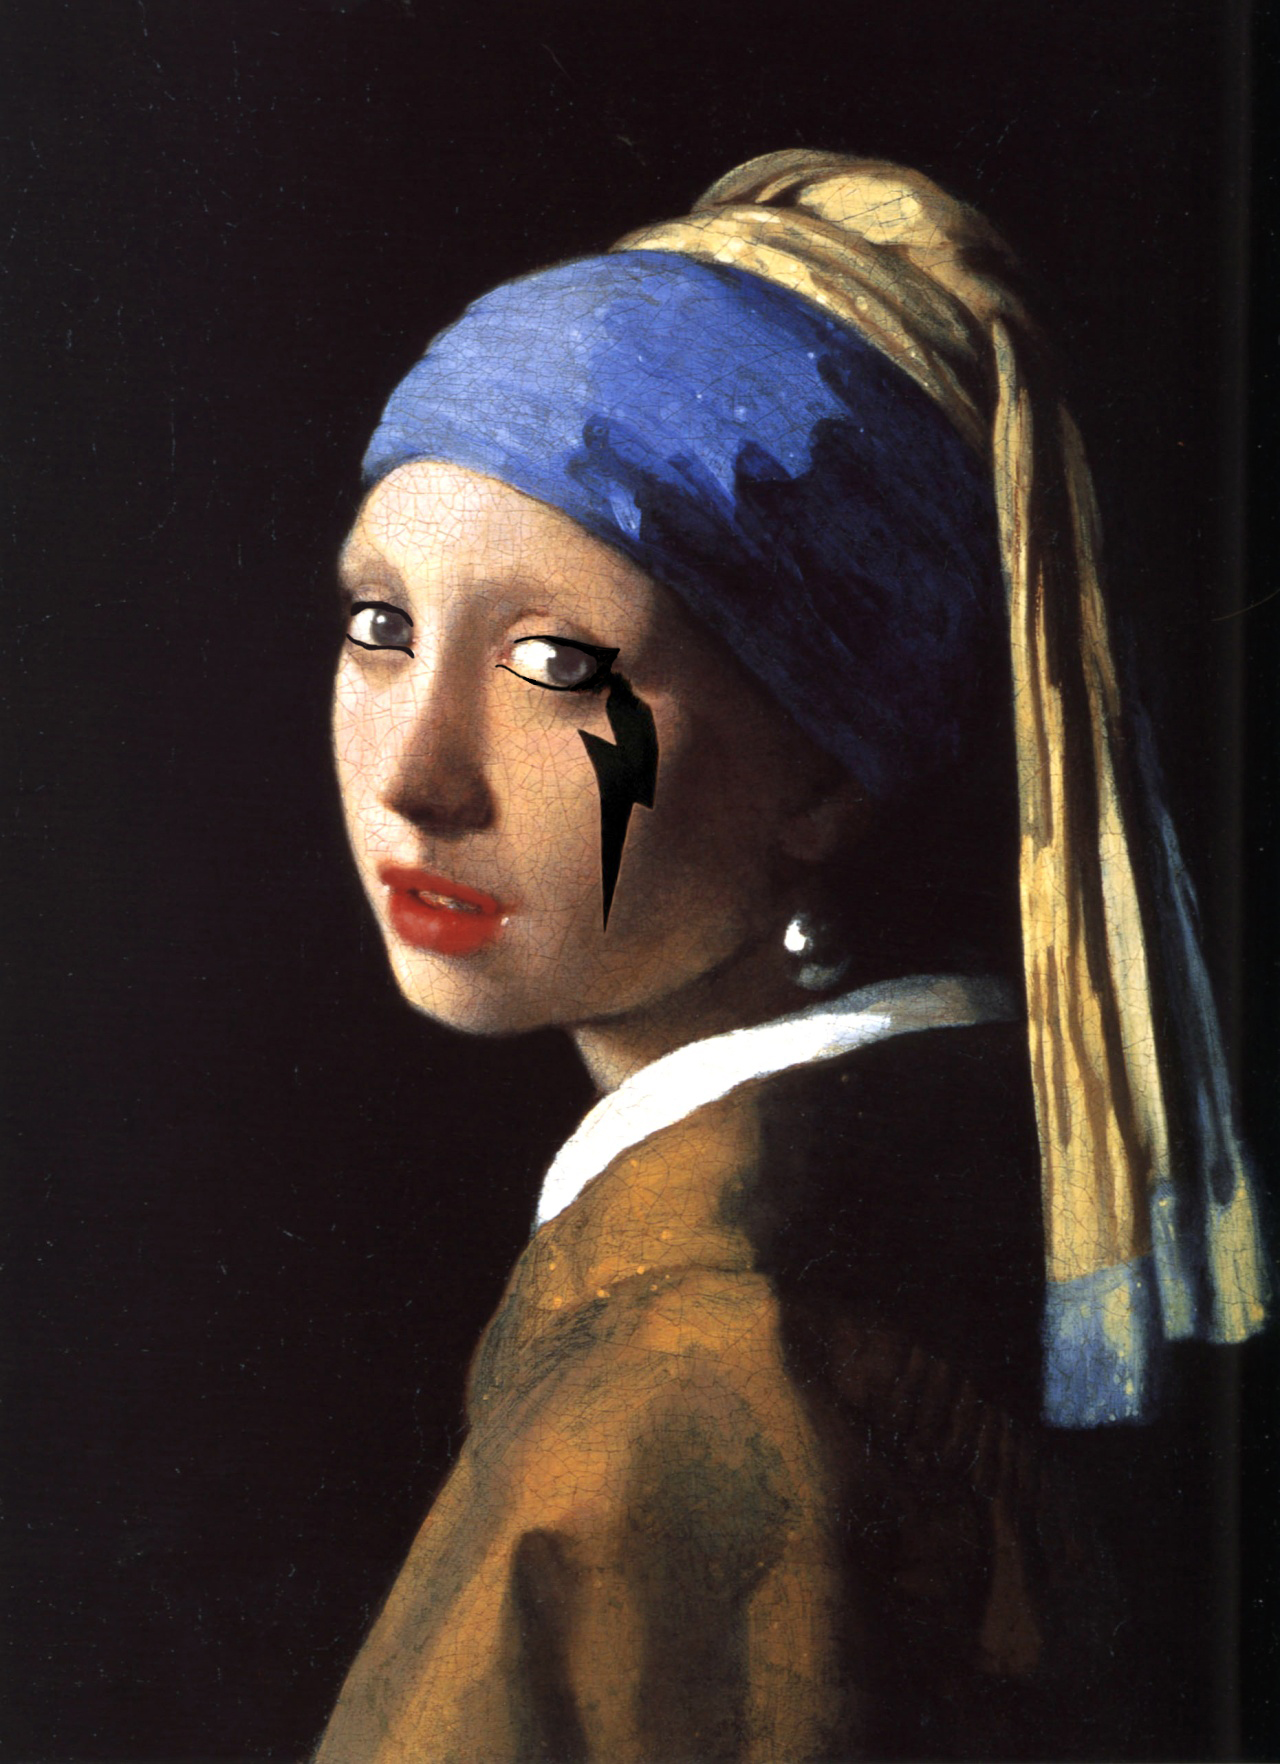 Girl with a Pearl Earring and a Lady Gaga Lighting Bolt